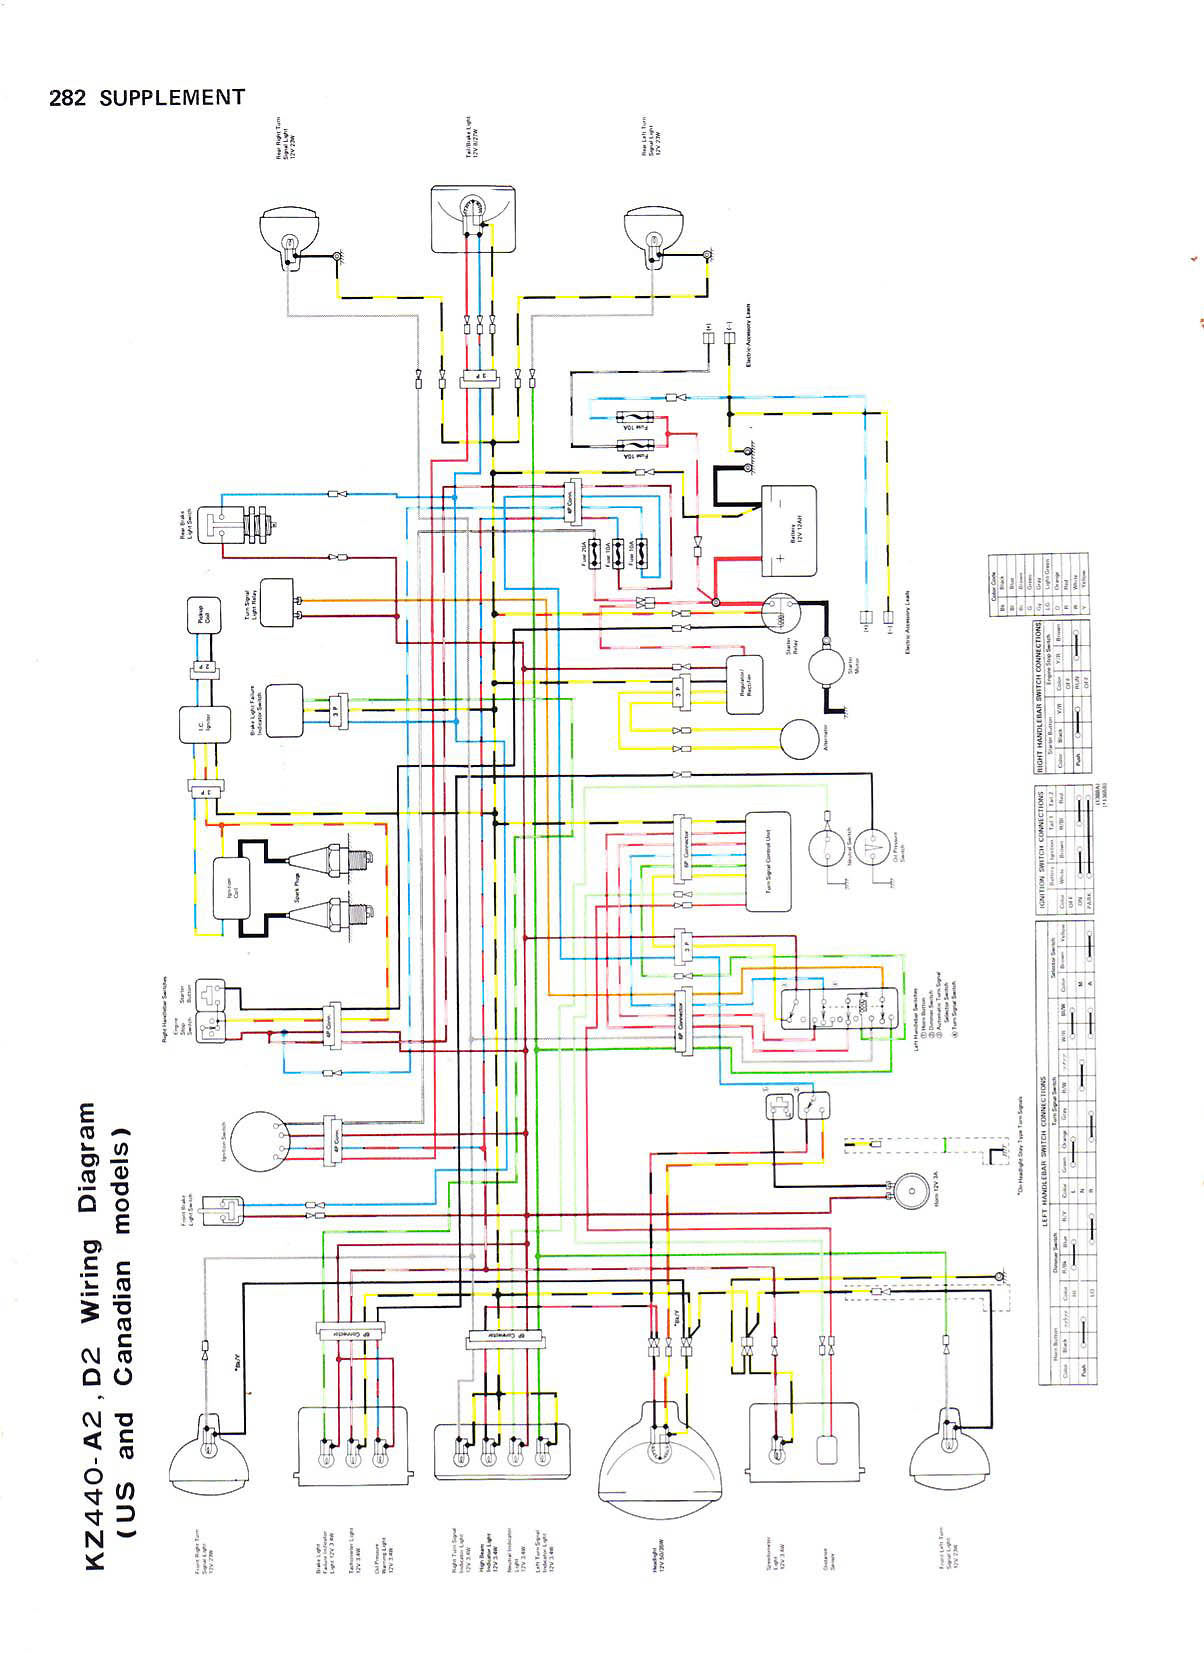 Kawasaki KZ 440 %2780 a %2782 Service Manual_Page_279 index of kz440 wiring diagrams 1980 kawasaki 440 ltd wiring diagram at bakdesigns.co